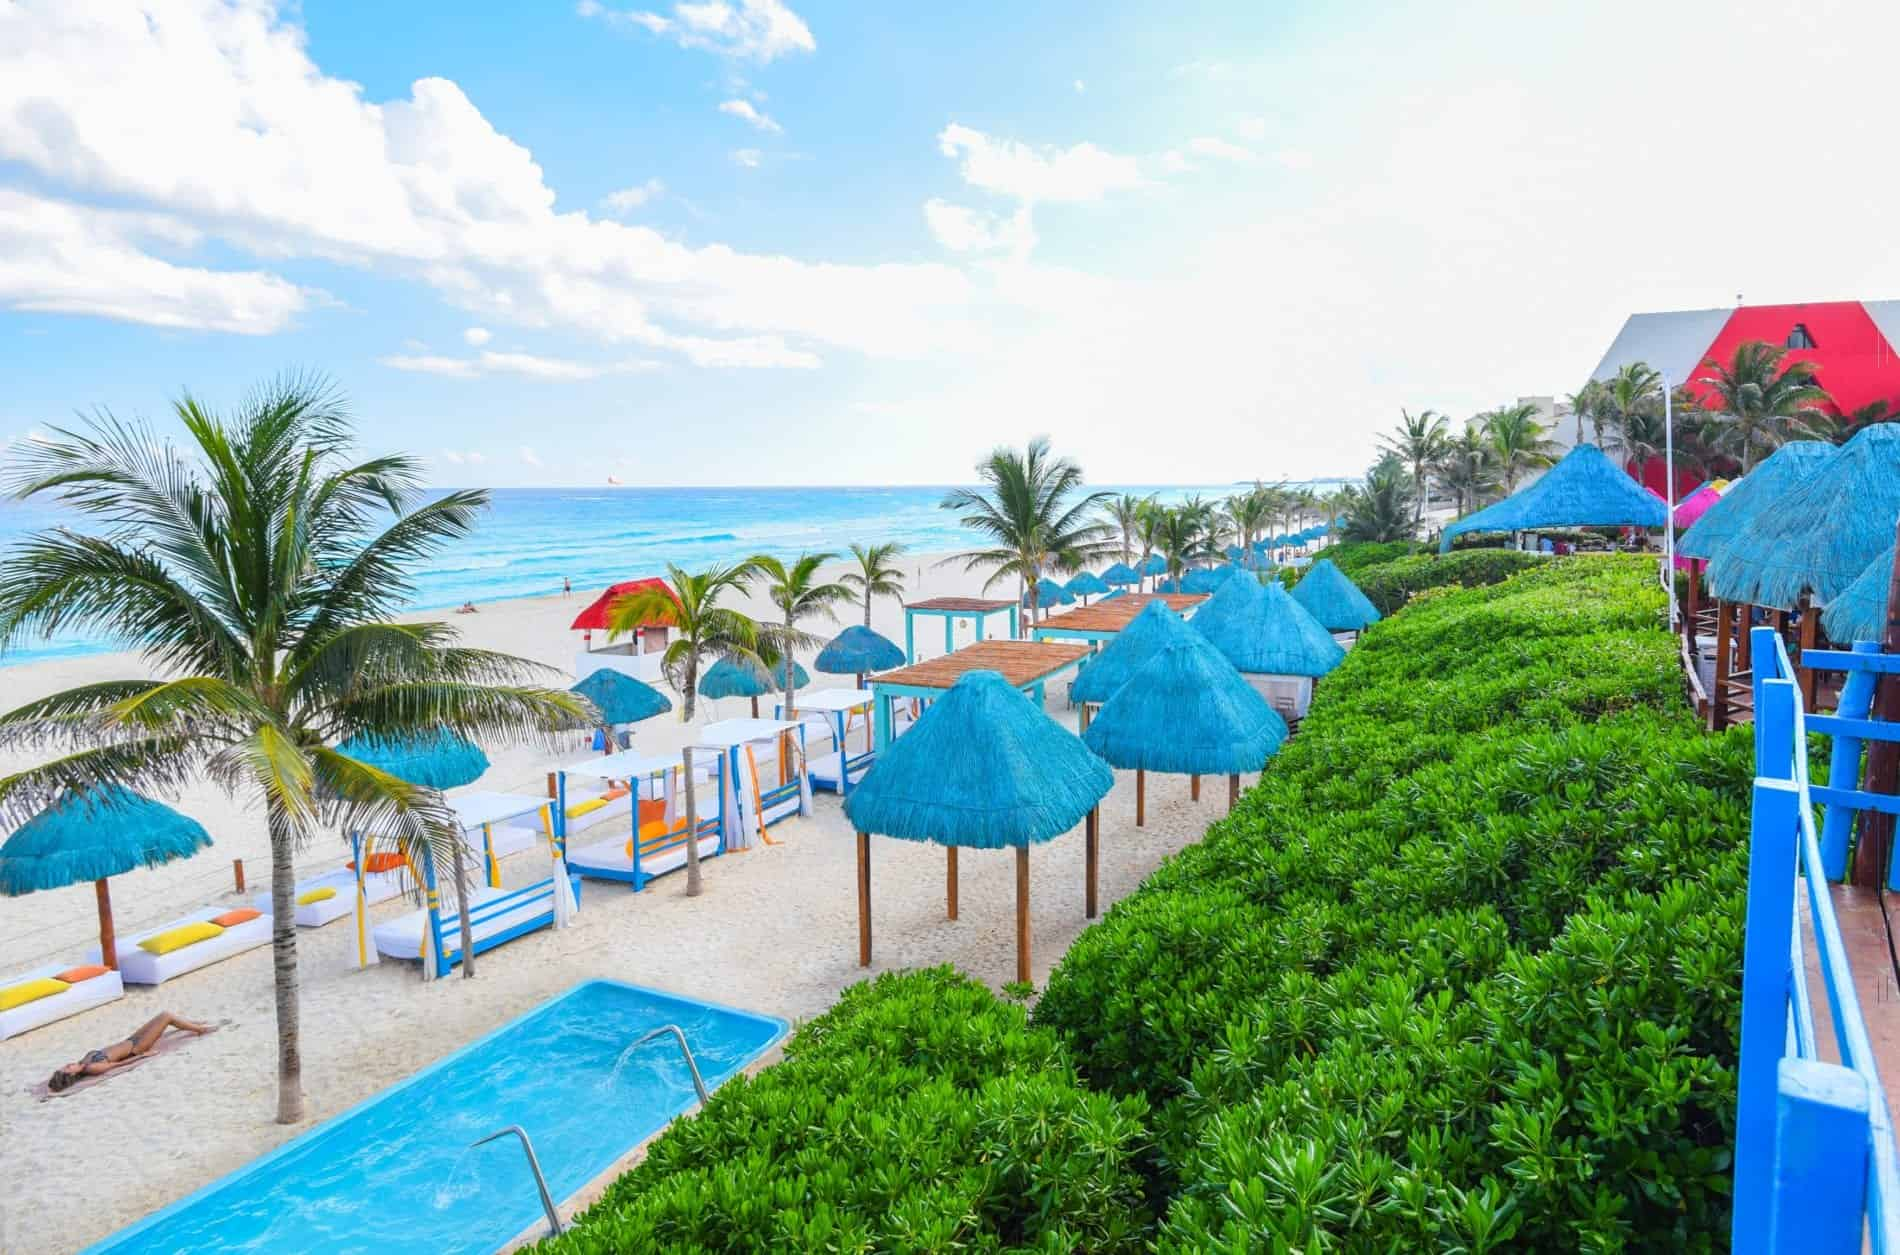 Grand Oasis Resort Cancun beach holiday